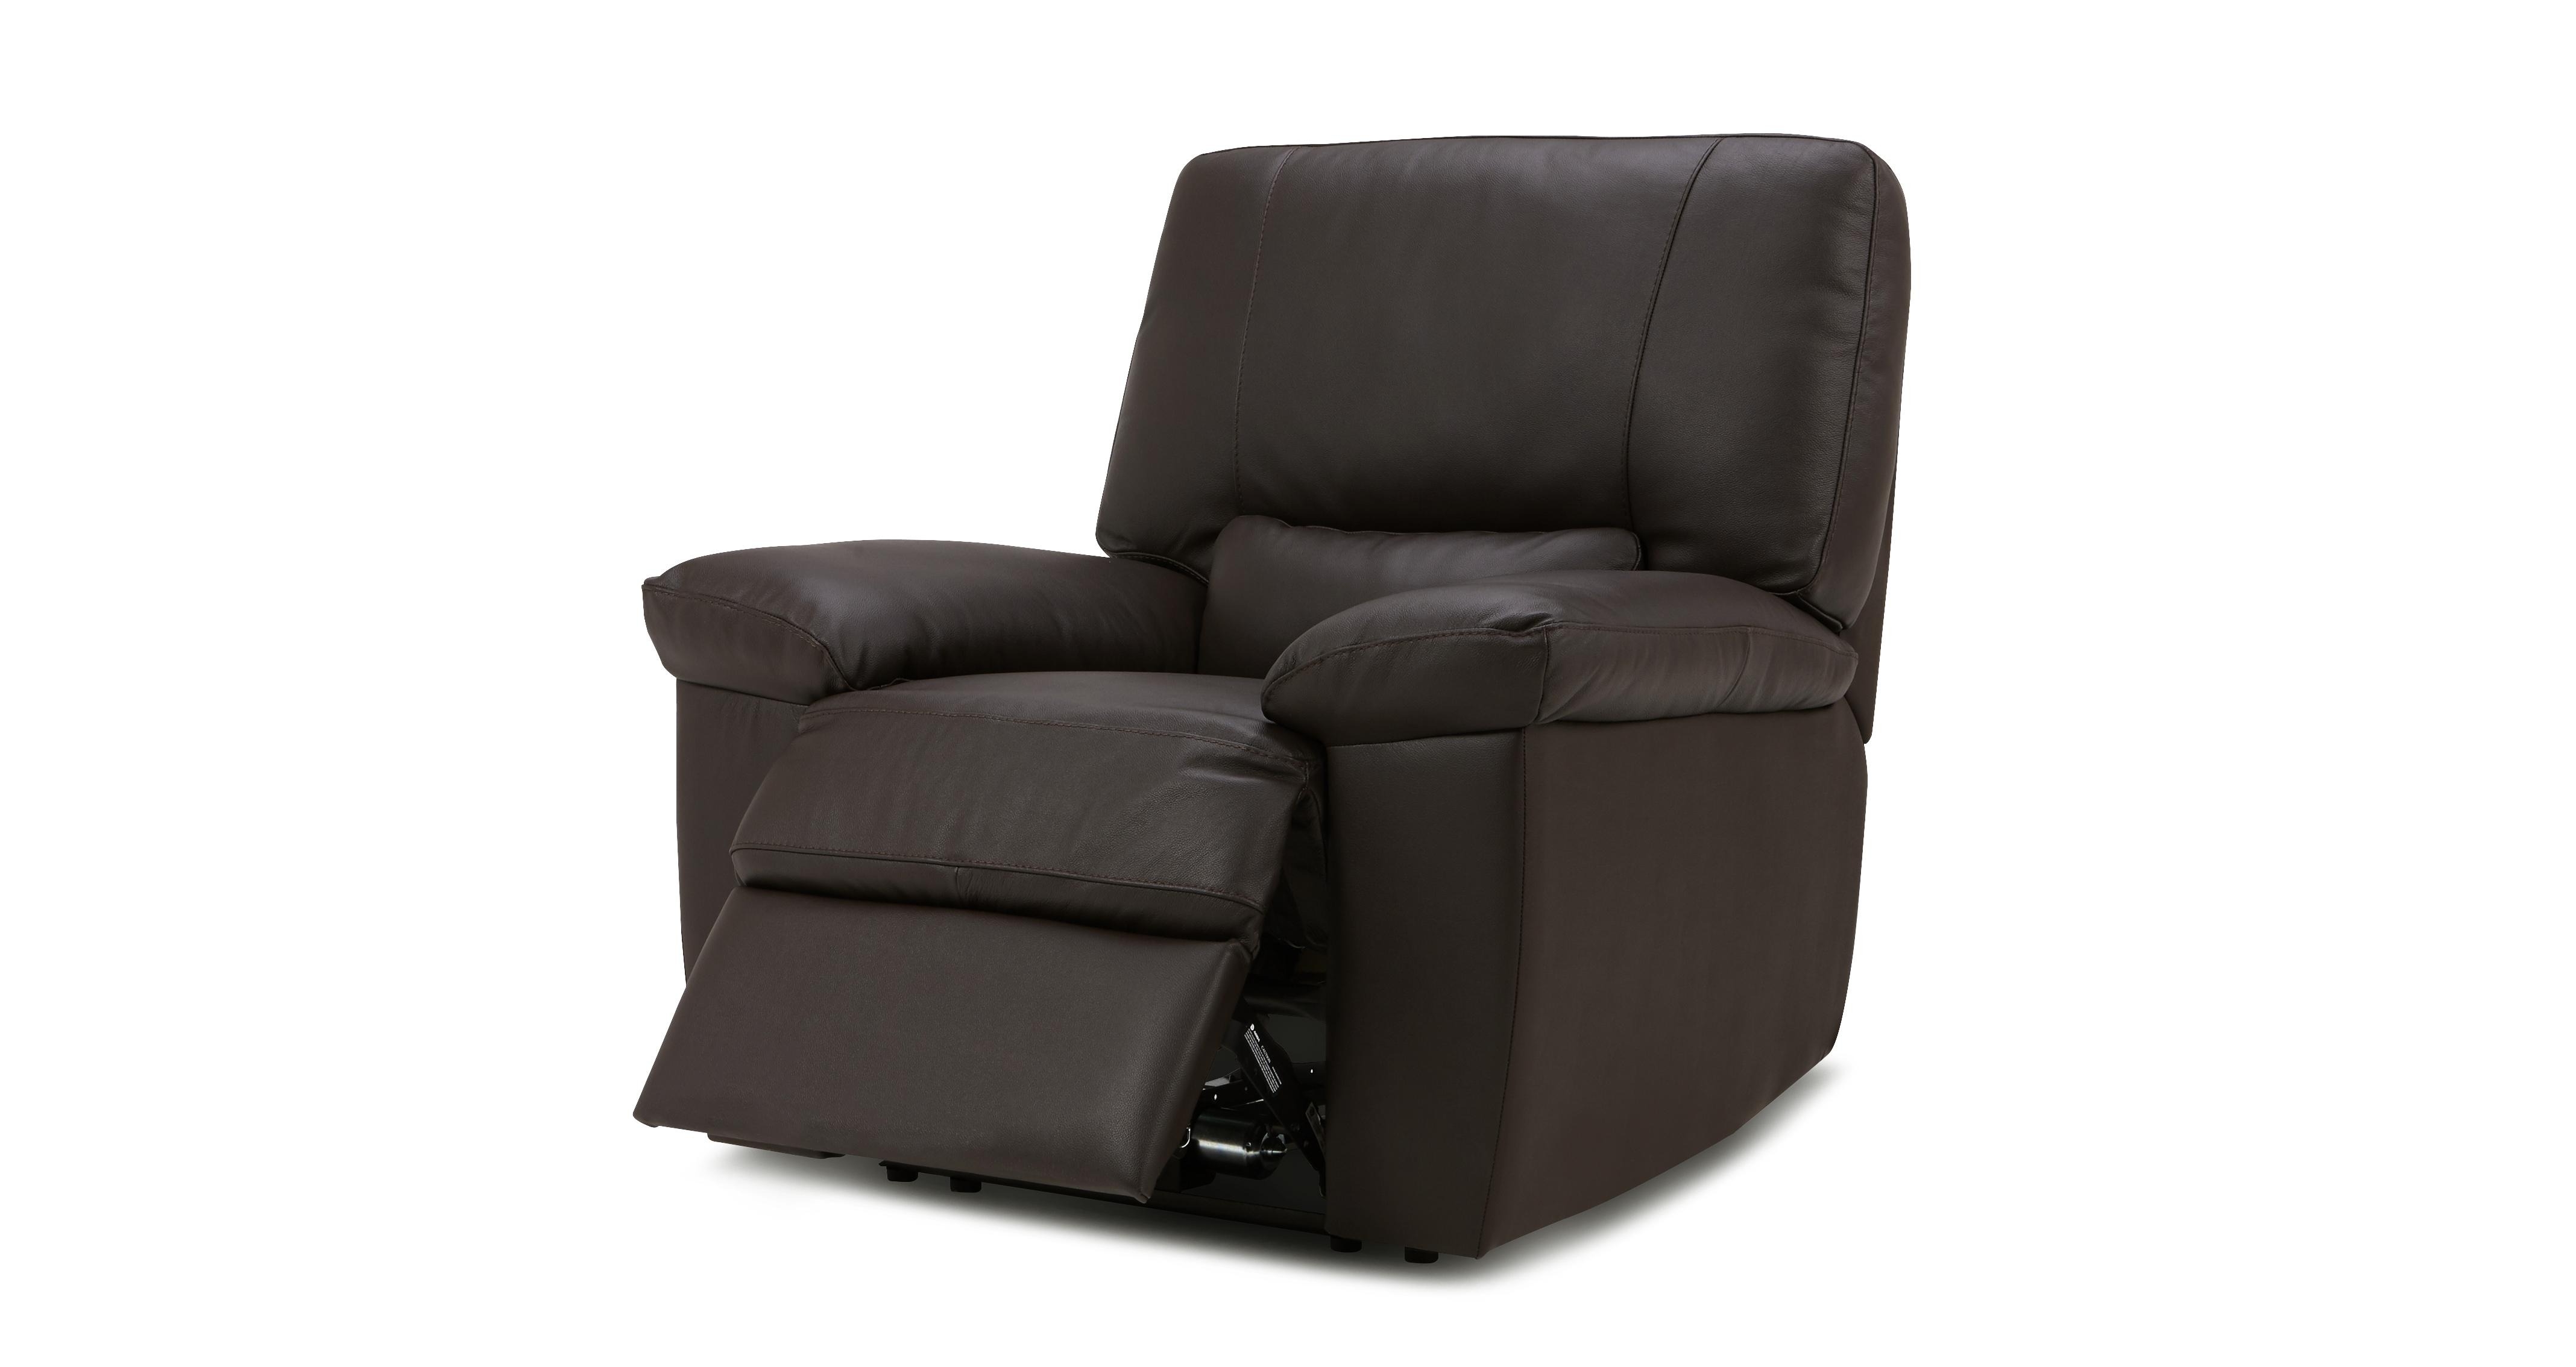 GXD-UK Avail Leather and Leather Look Electric Recliner Chair Hazen  sc 1 st  DFS & Recliner Chairs In A Range Of Styles For Your Home | DFS islam-shia.org